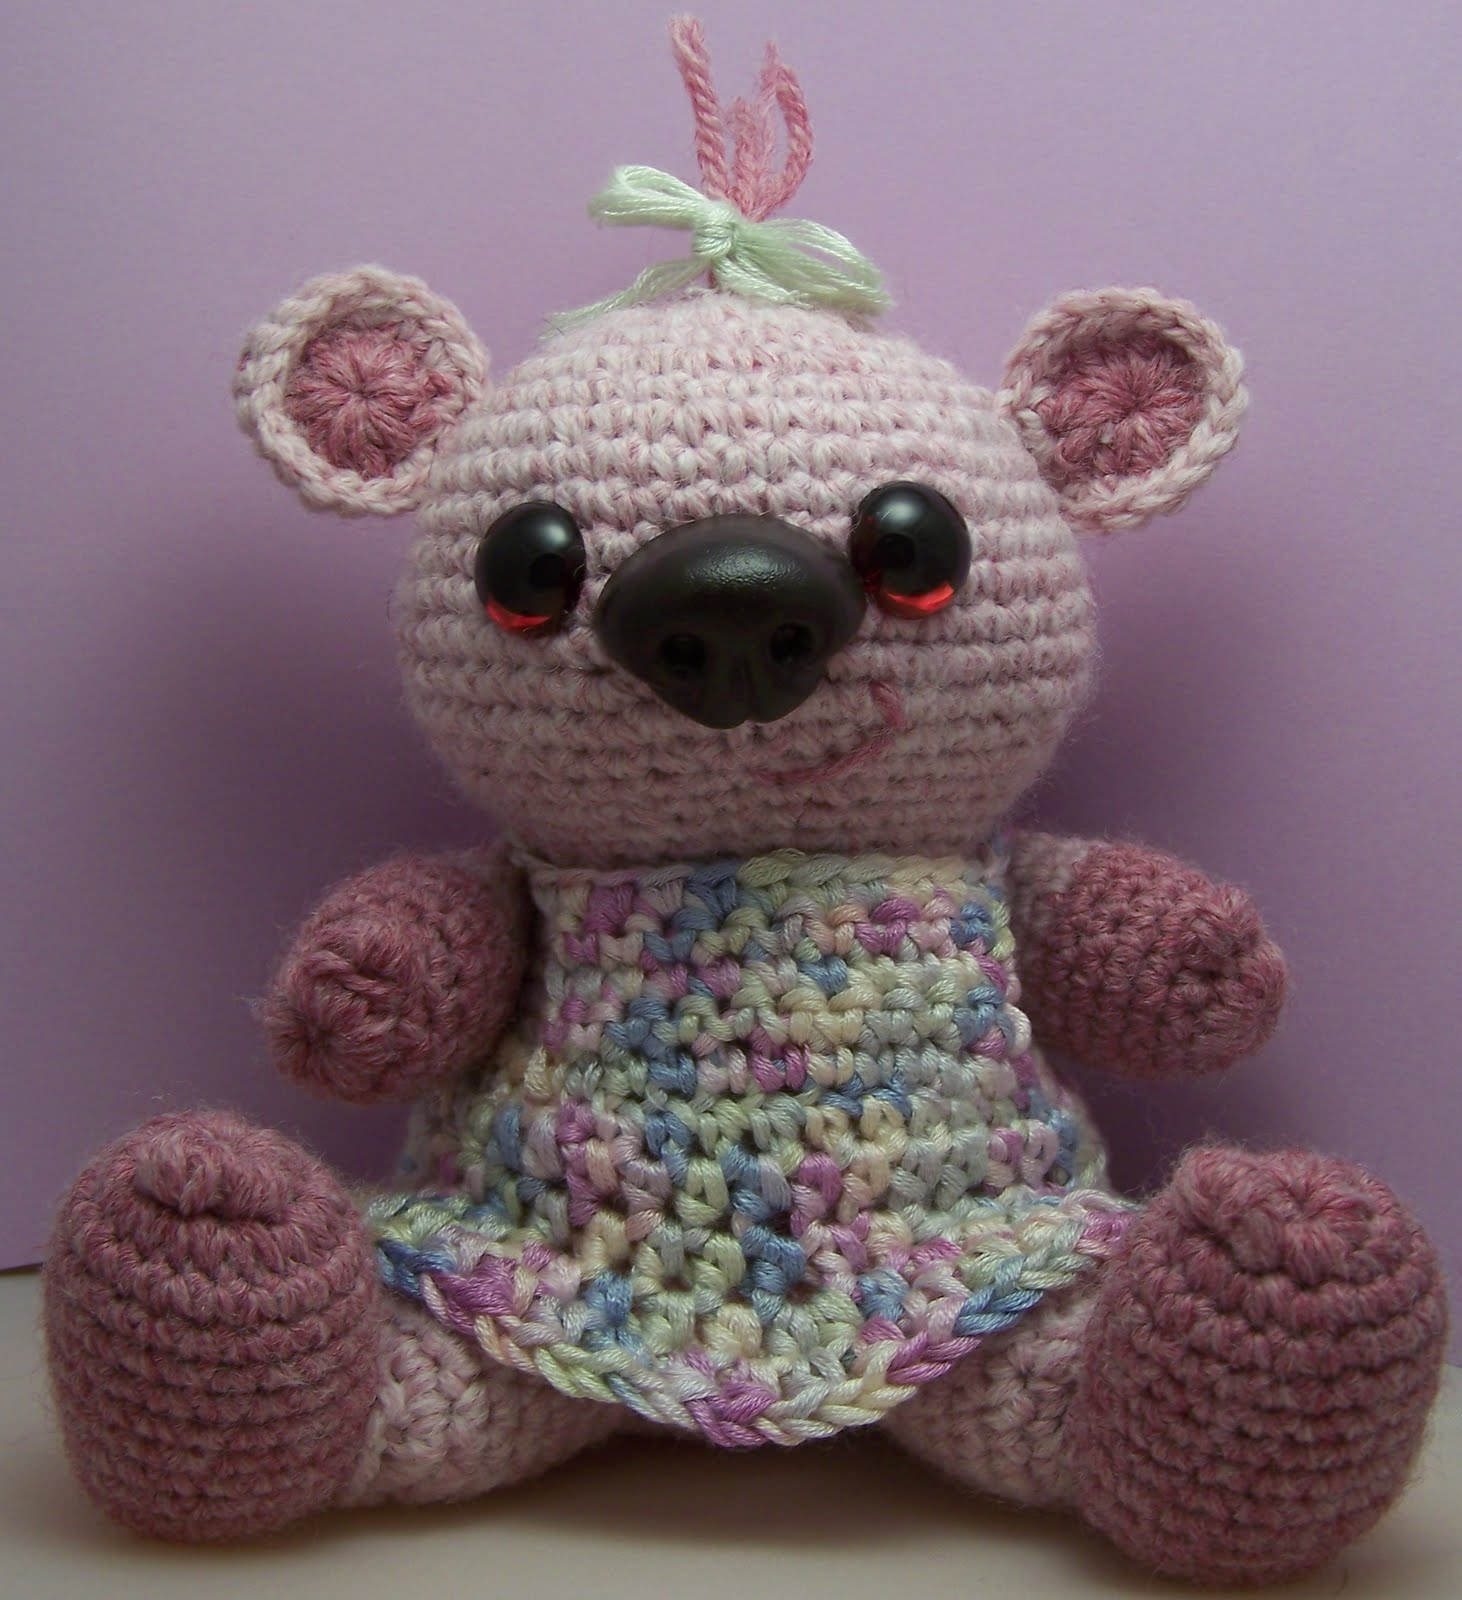 Crochet Pattern Amigurumi Bear : 2000 Free Amigurumi Patterns: Sophie Bear